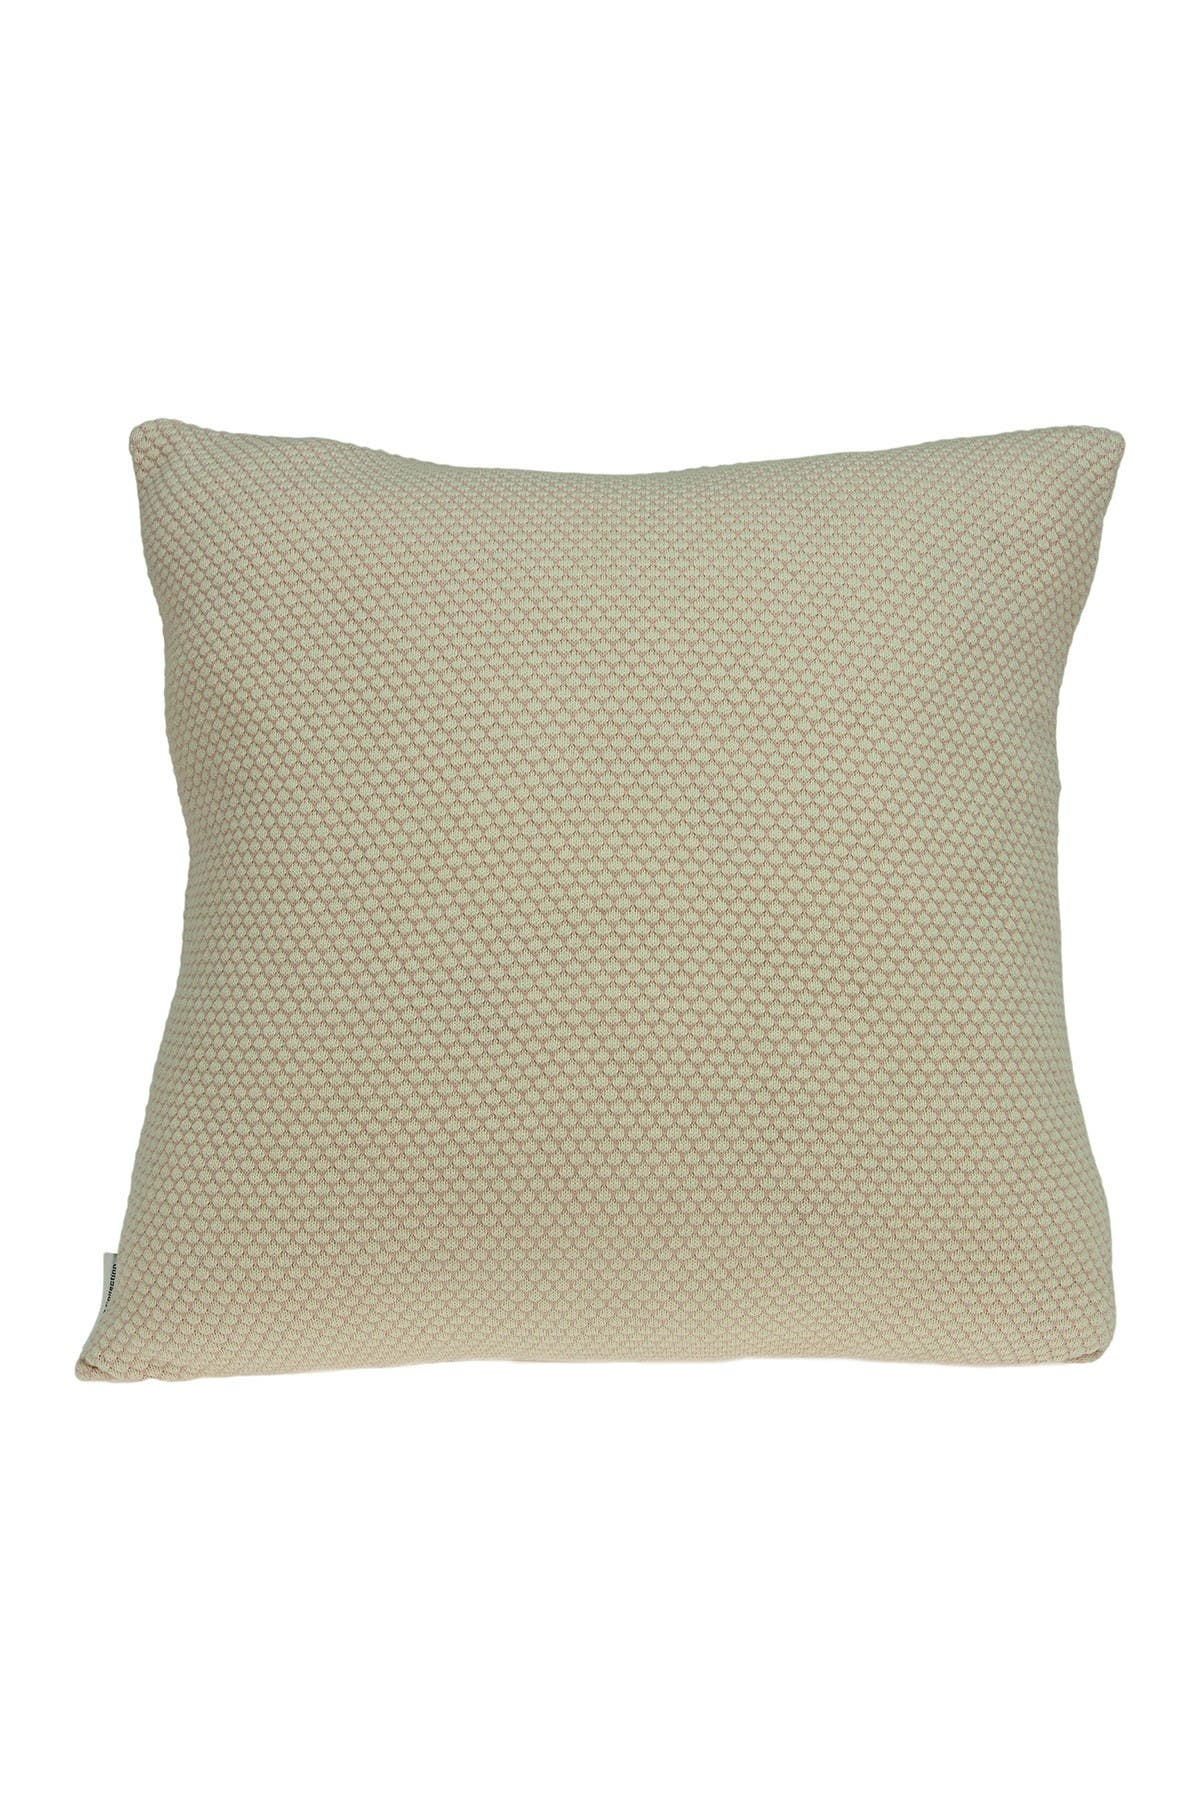 """Image of Parkland Collection Cassi Transitional Pillow - 20"""" x 20"""" - Tan"""